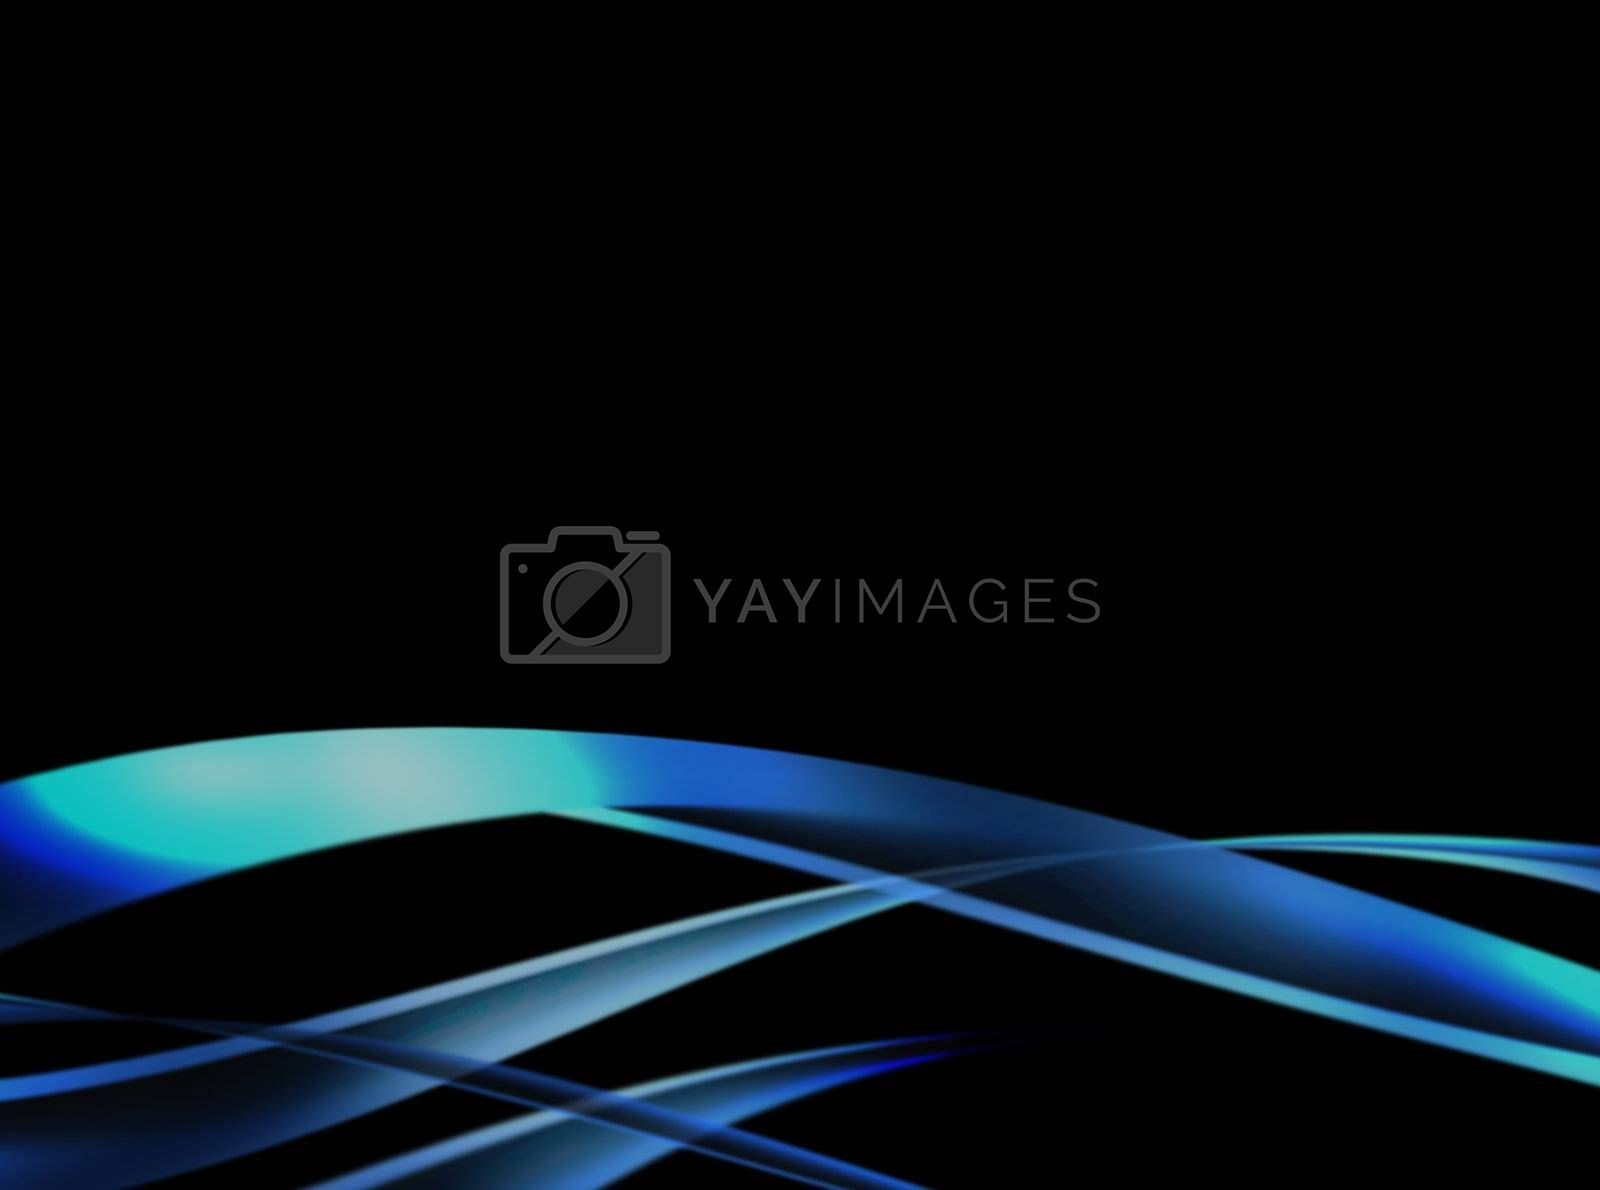 blue waves on black background, abstract design